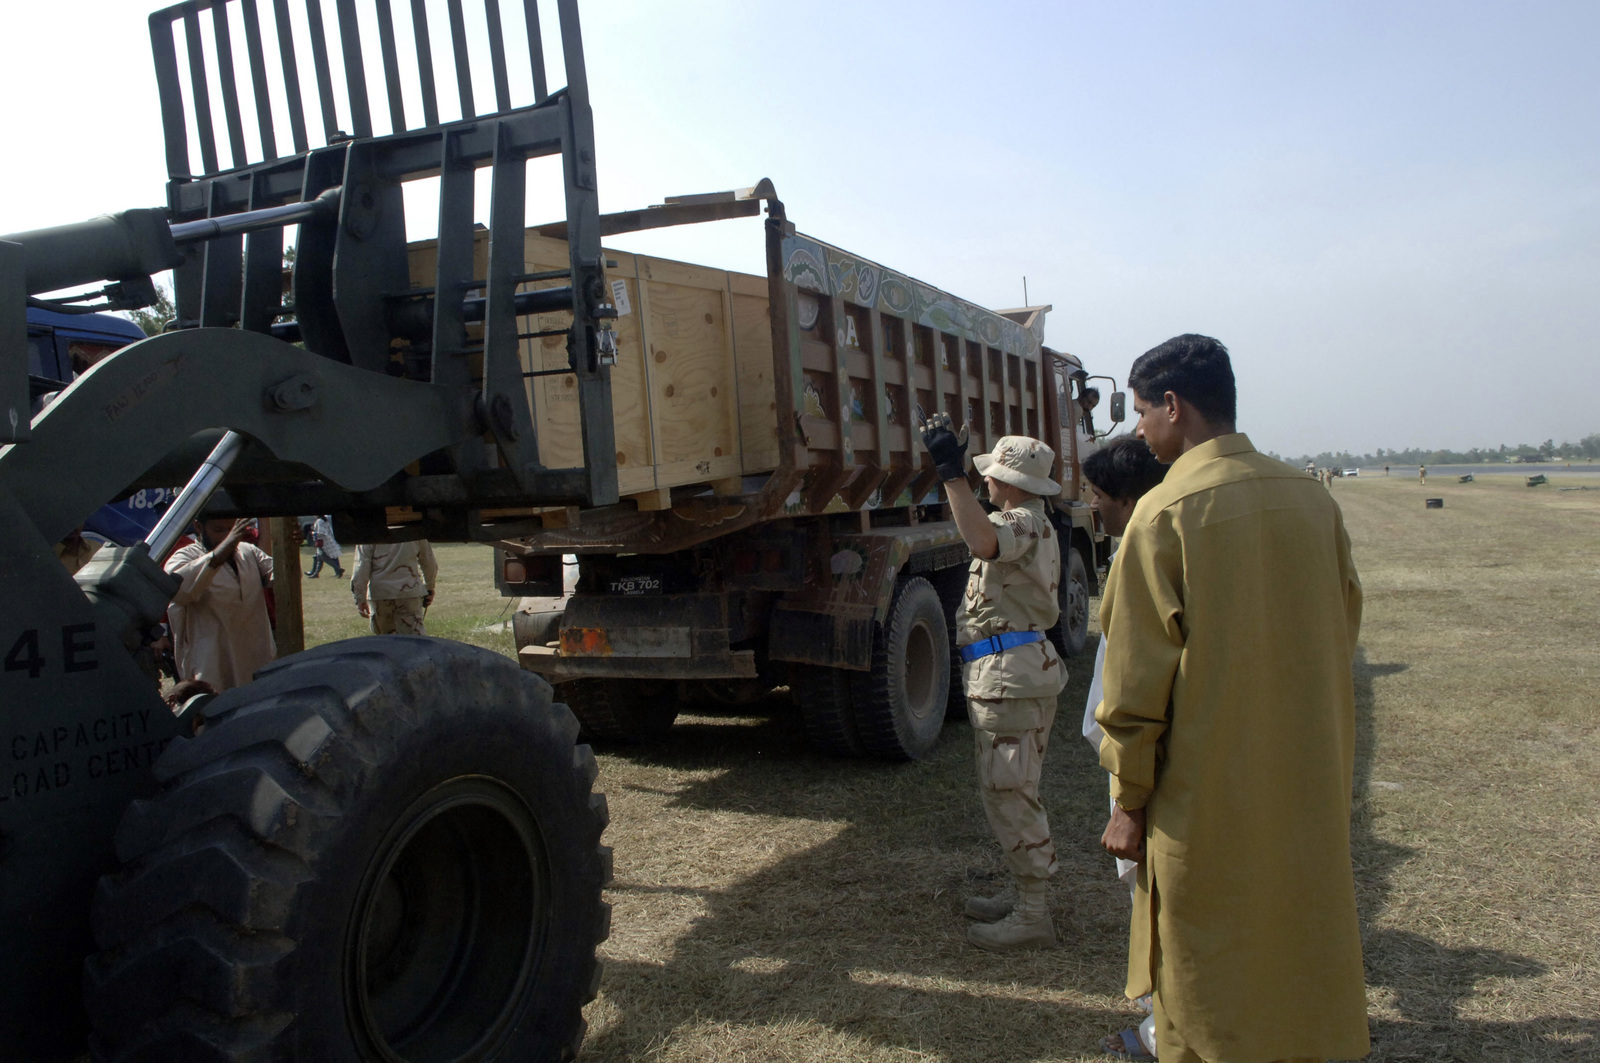 U.S. Air Force ground crews help load up a civilian cargo truck in Islamabad, Pakistan, with earthquake relief supplies for overland transport to areas in Pakistan Oct. 14, 2005. The Department of Defense is participating in the multinational effort to provide humanitarian assistance and support to Pakistan and parts of India and Afghanistan following a devastating earthquake. (U.S. Army photo by SPC. Christopher Admire) (Released)